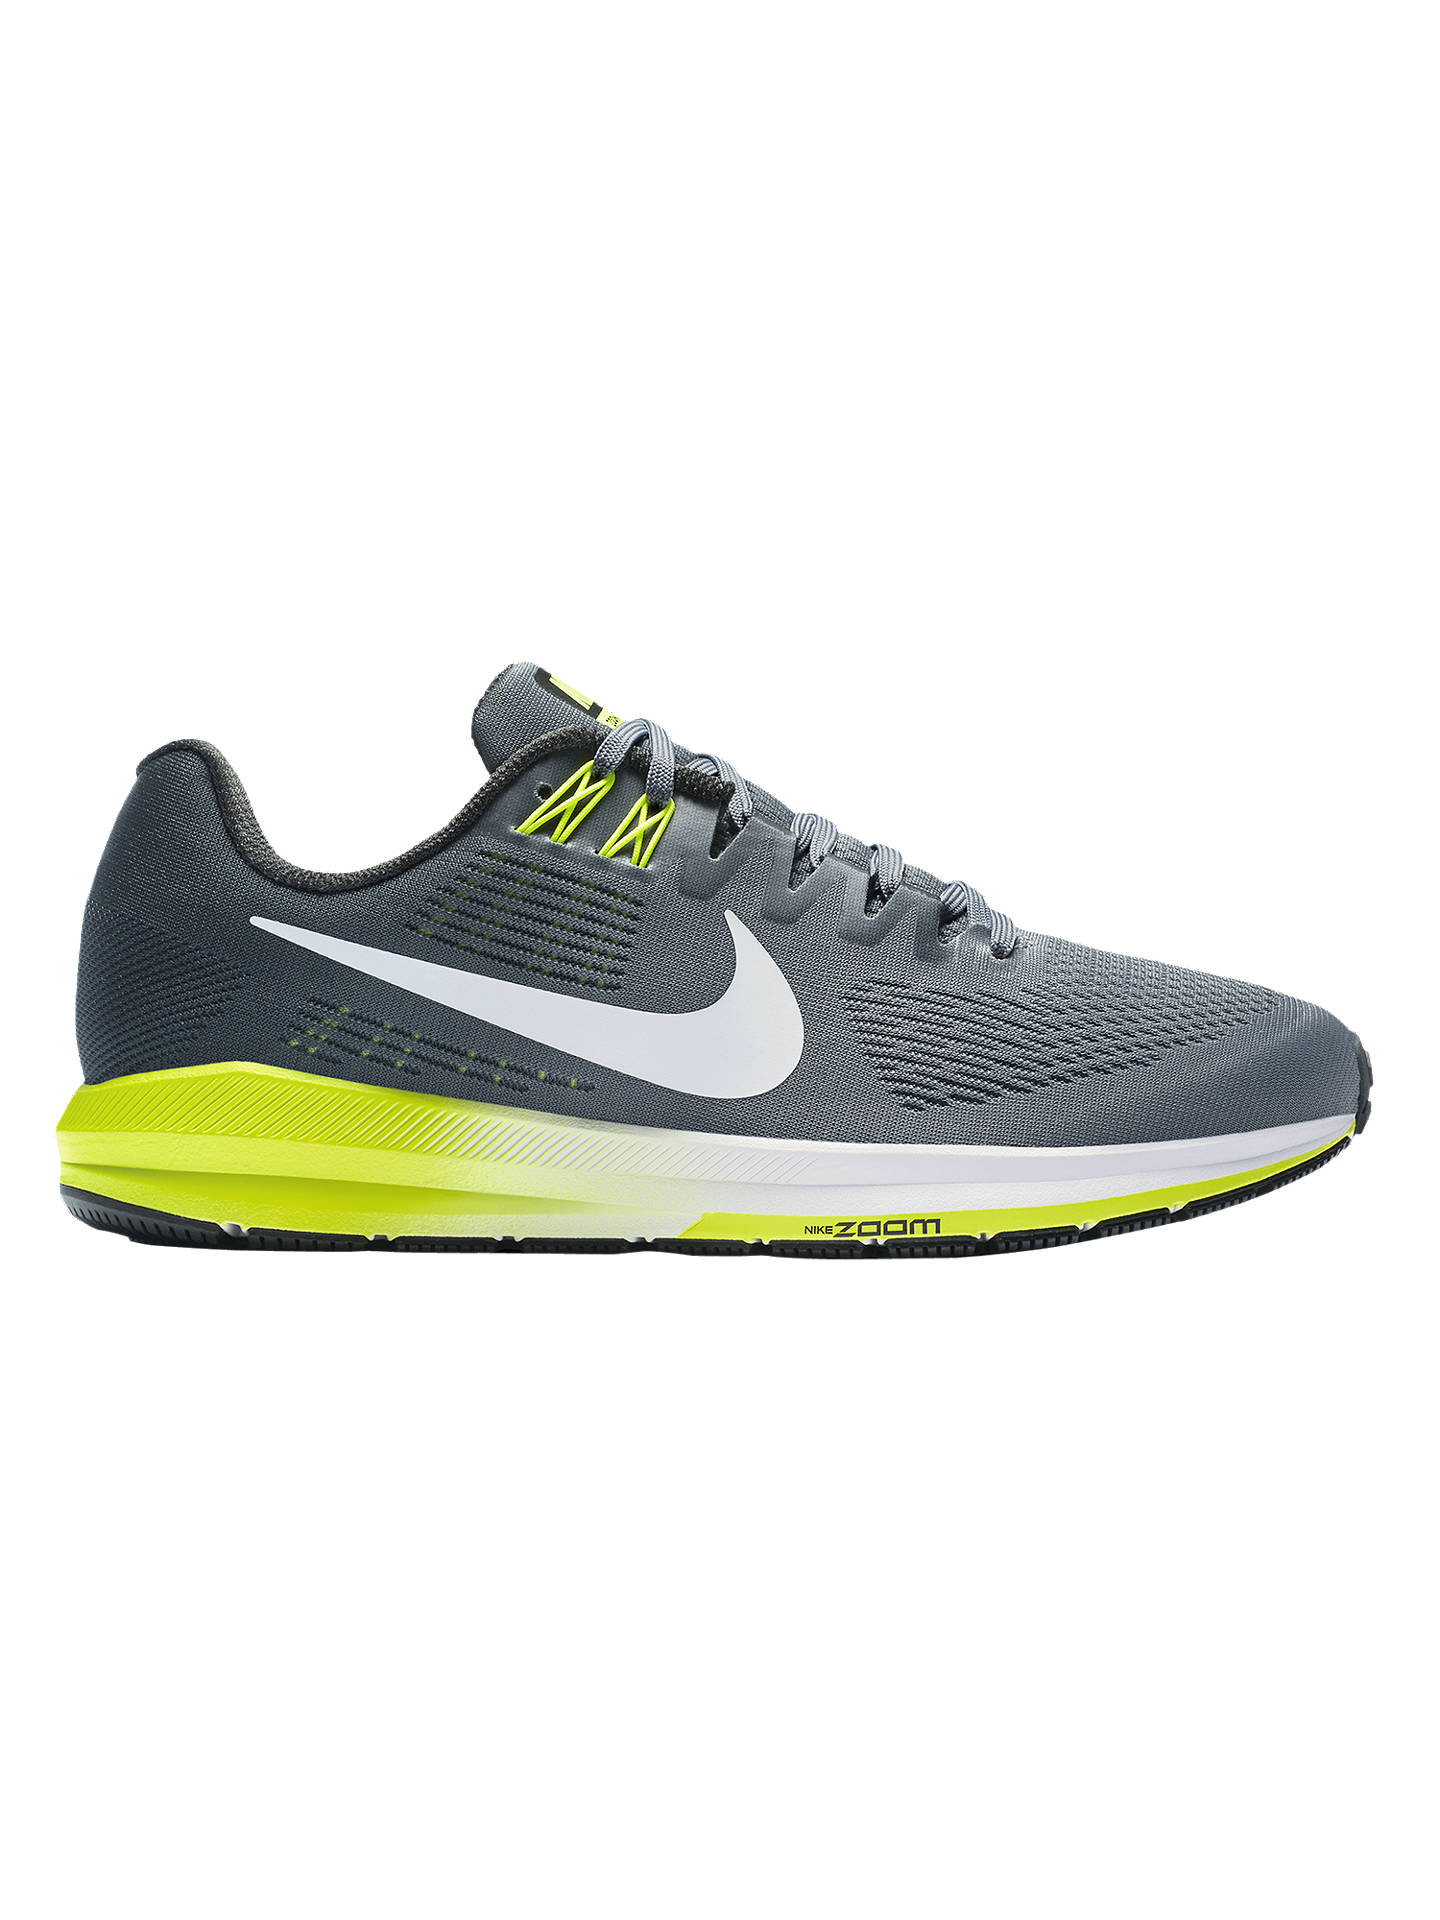 ccc84d861d3d Buy Nike Air Zoom Structure 21 Men s Running Shoes